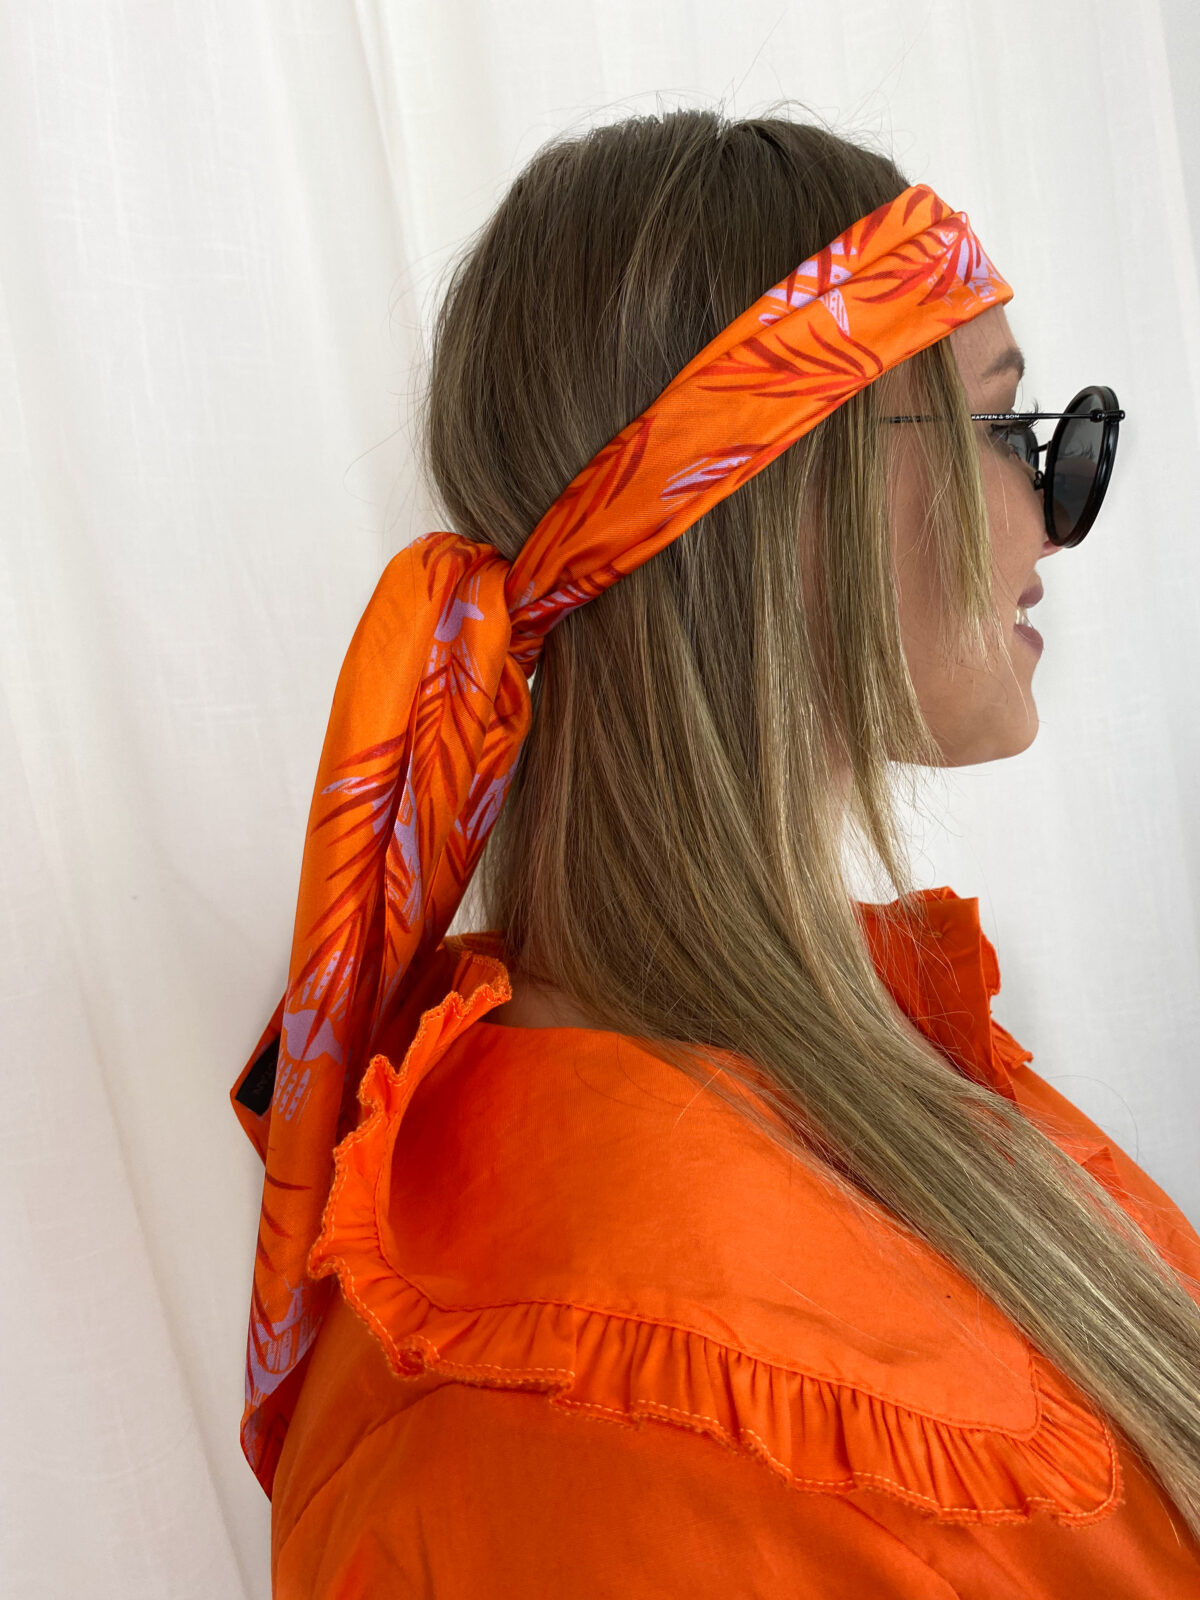 woman with an orange ribbon in her hair